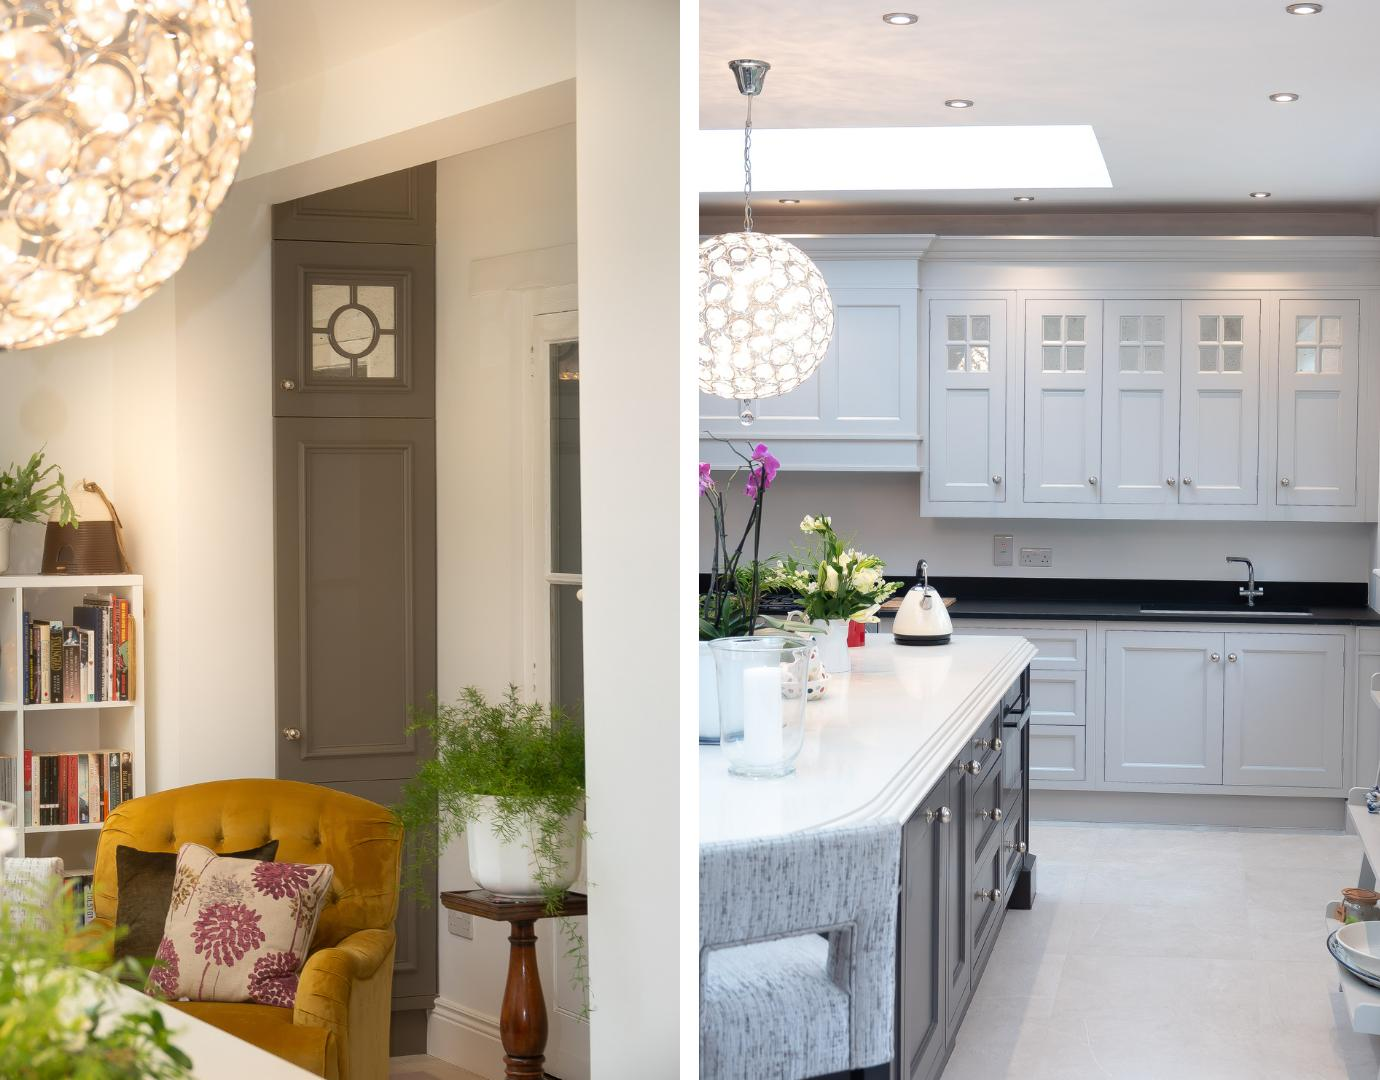 Buying A Used Kitchen turned us into Interior Designers